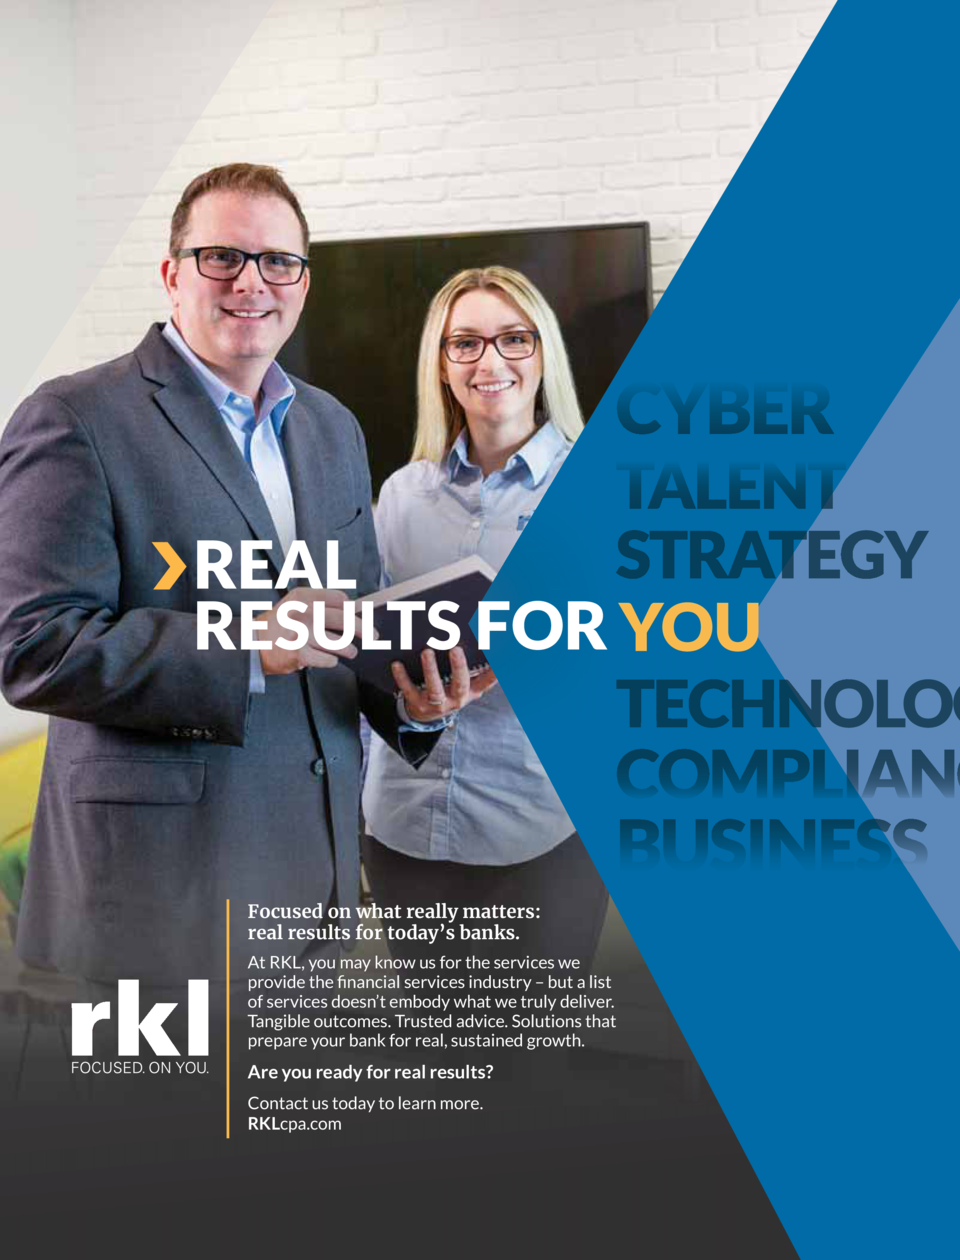 Focused on what really matters  real results for today   s banks. At RKL, you may know us for the services we SURYLGH WKH ...